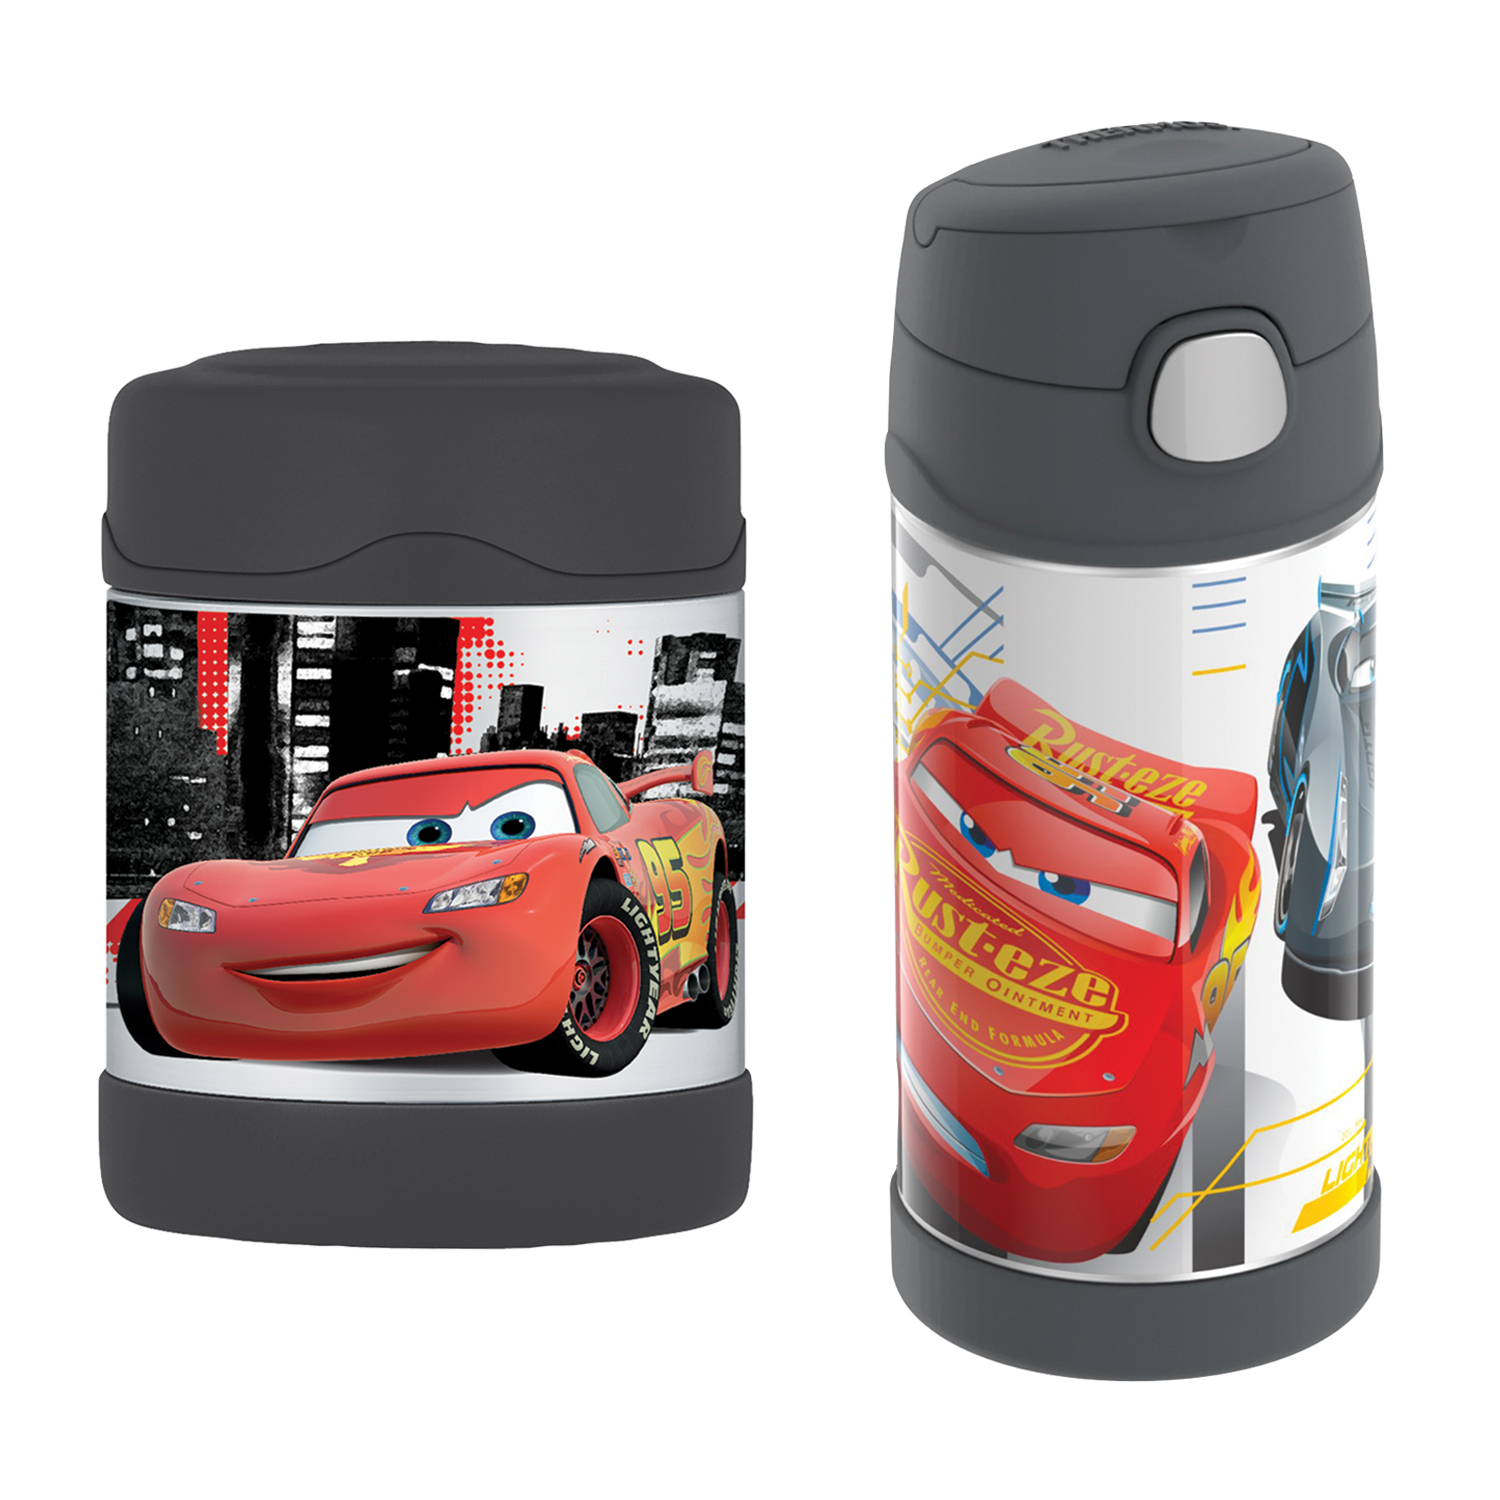 Thermos FUNtainer 12-Ounce Bottle, Disney Cars & Thermos FUNtainer 10-Ounce Food Jar, Disney Cars